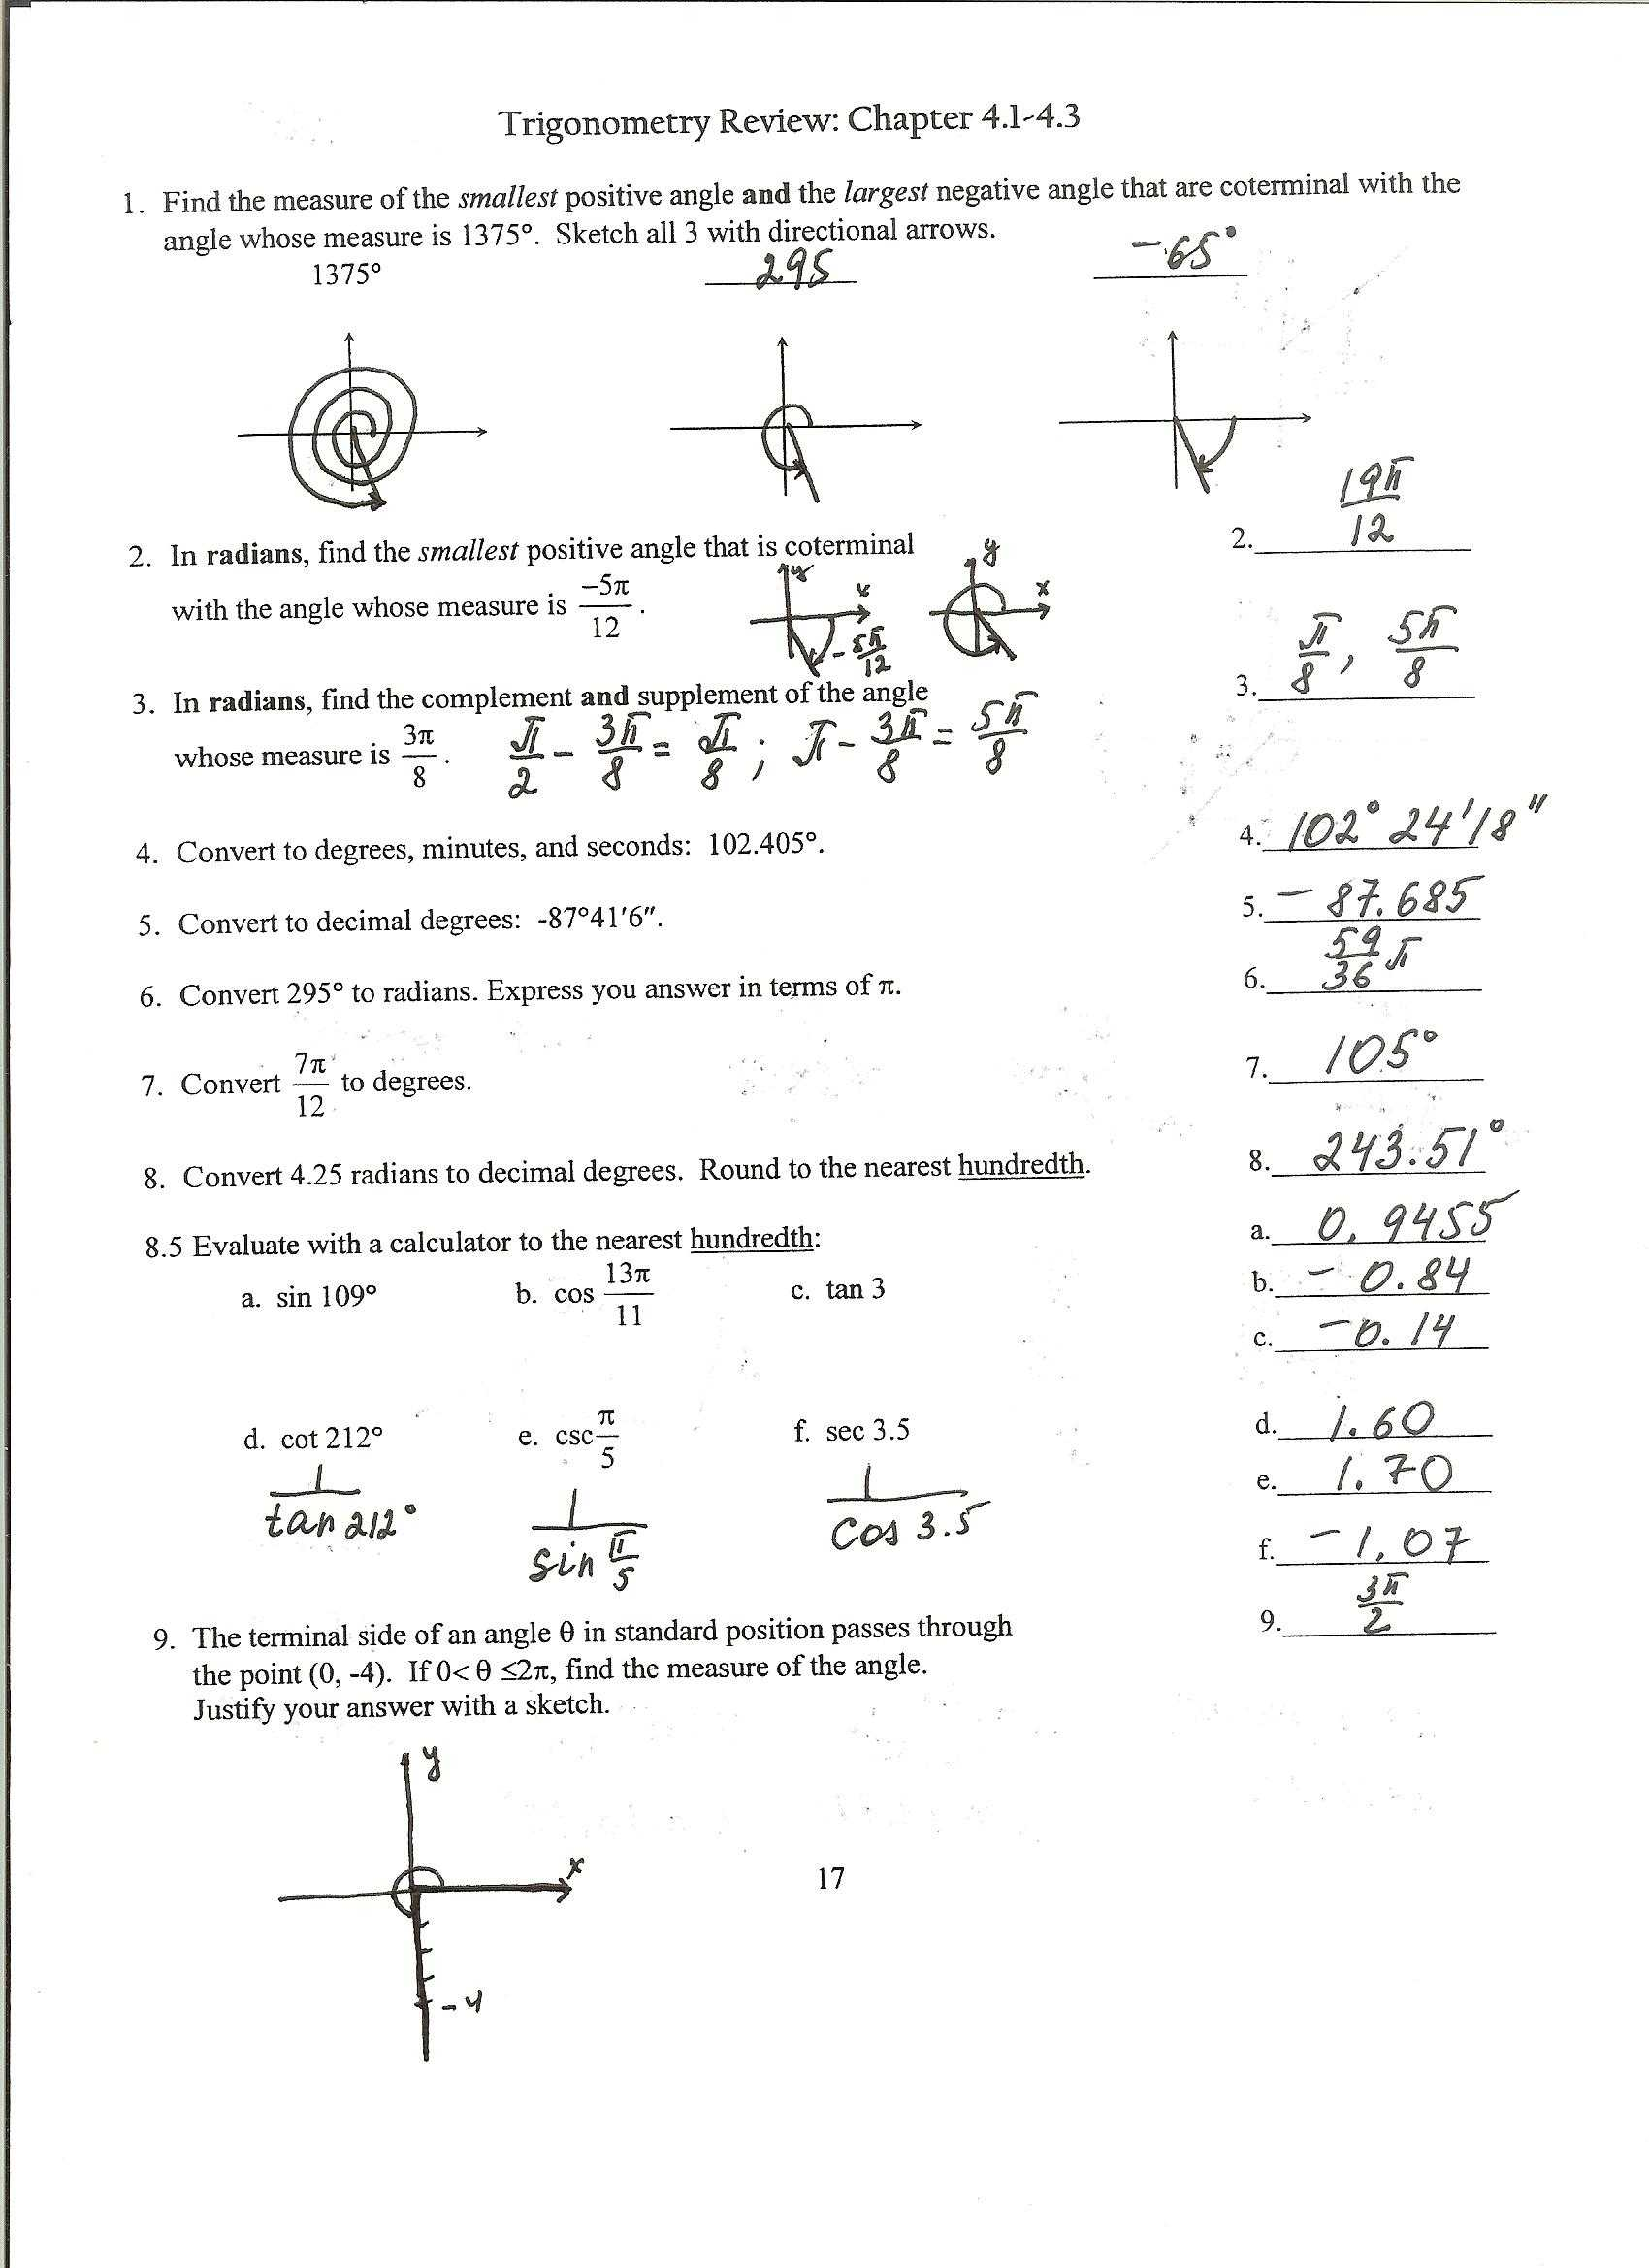 Extended Algebra 1 Functions Worksheet 4 Answers as Well as Precalculus Honors